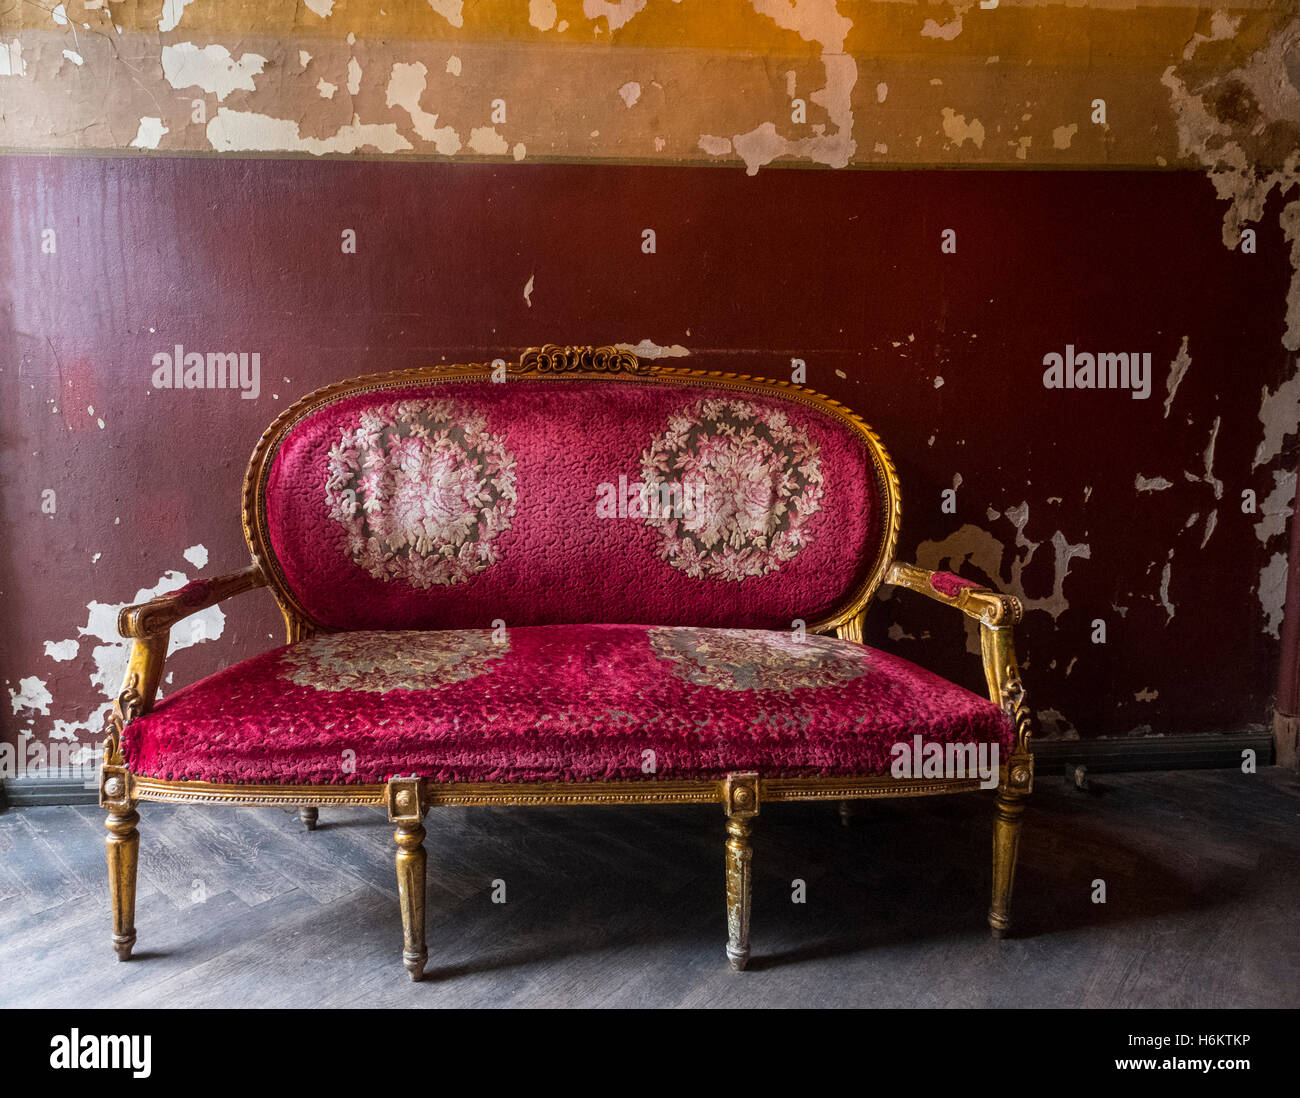 Old antique red sofa with gold gilt legs and ornate decoration - Stock Image